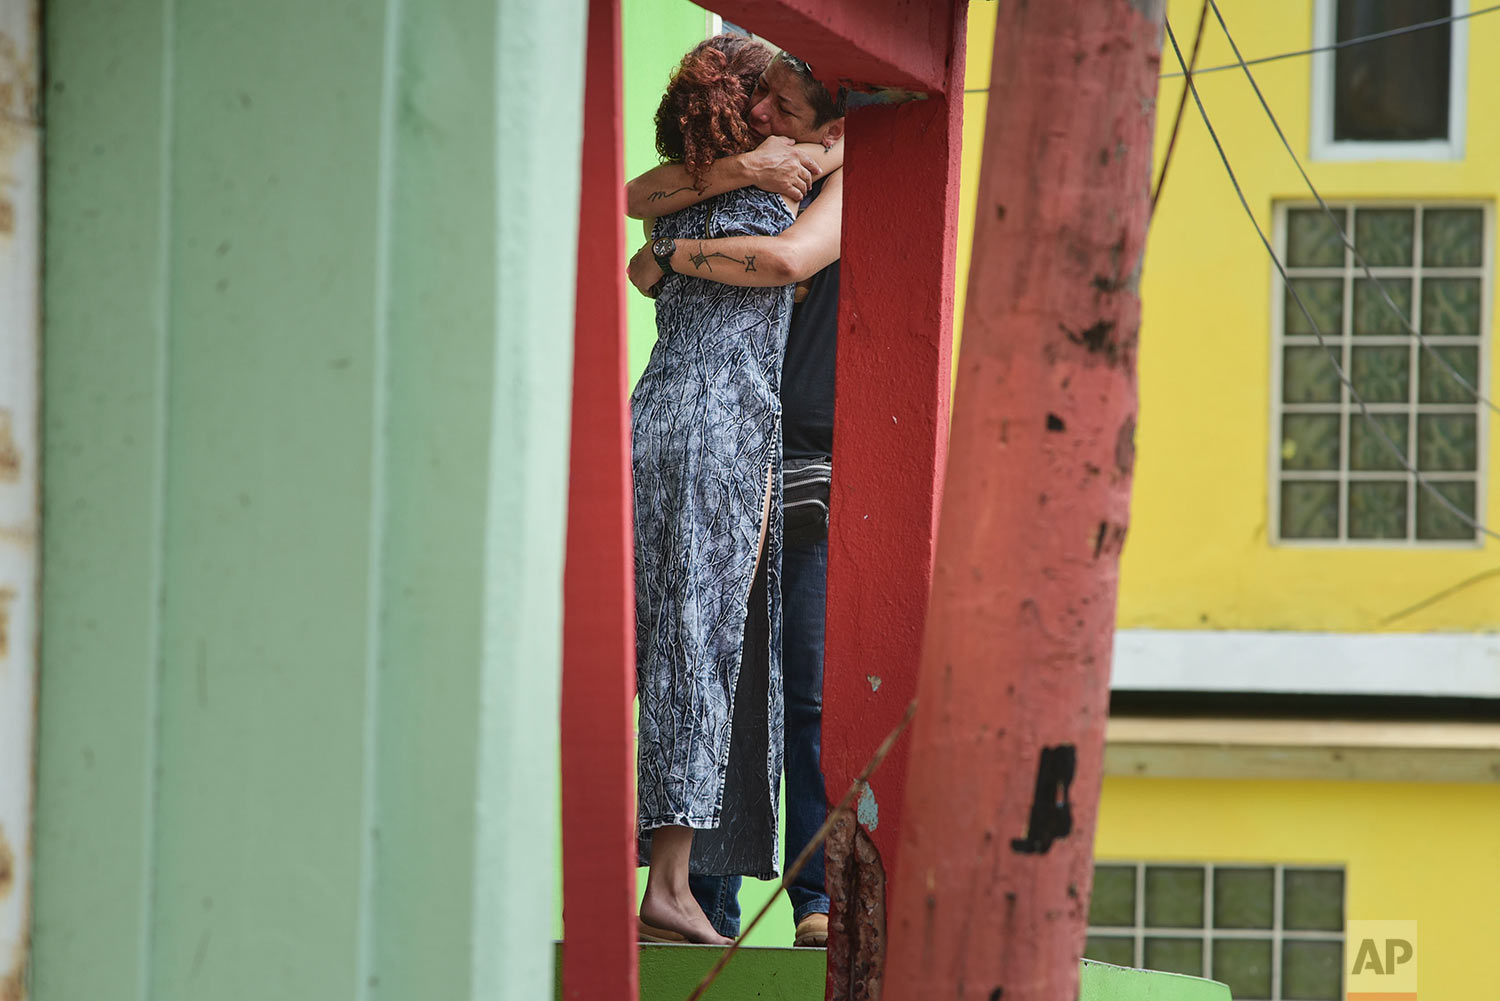 Residents at La Perla community in Old San Juan comfort one another as the community recovers from Hurricane Maria, in San Juan, Puerto Rico, Monday, Sept. 25, 2017. (AP Photo/Carlos Giusti)